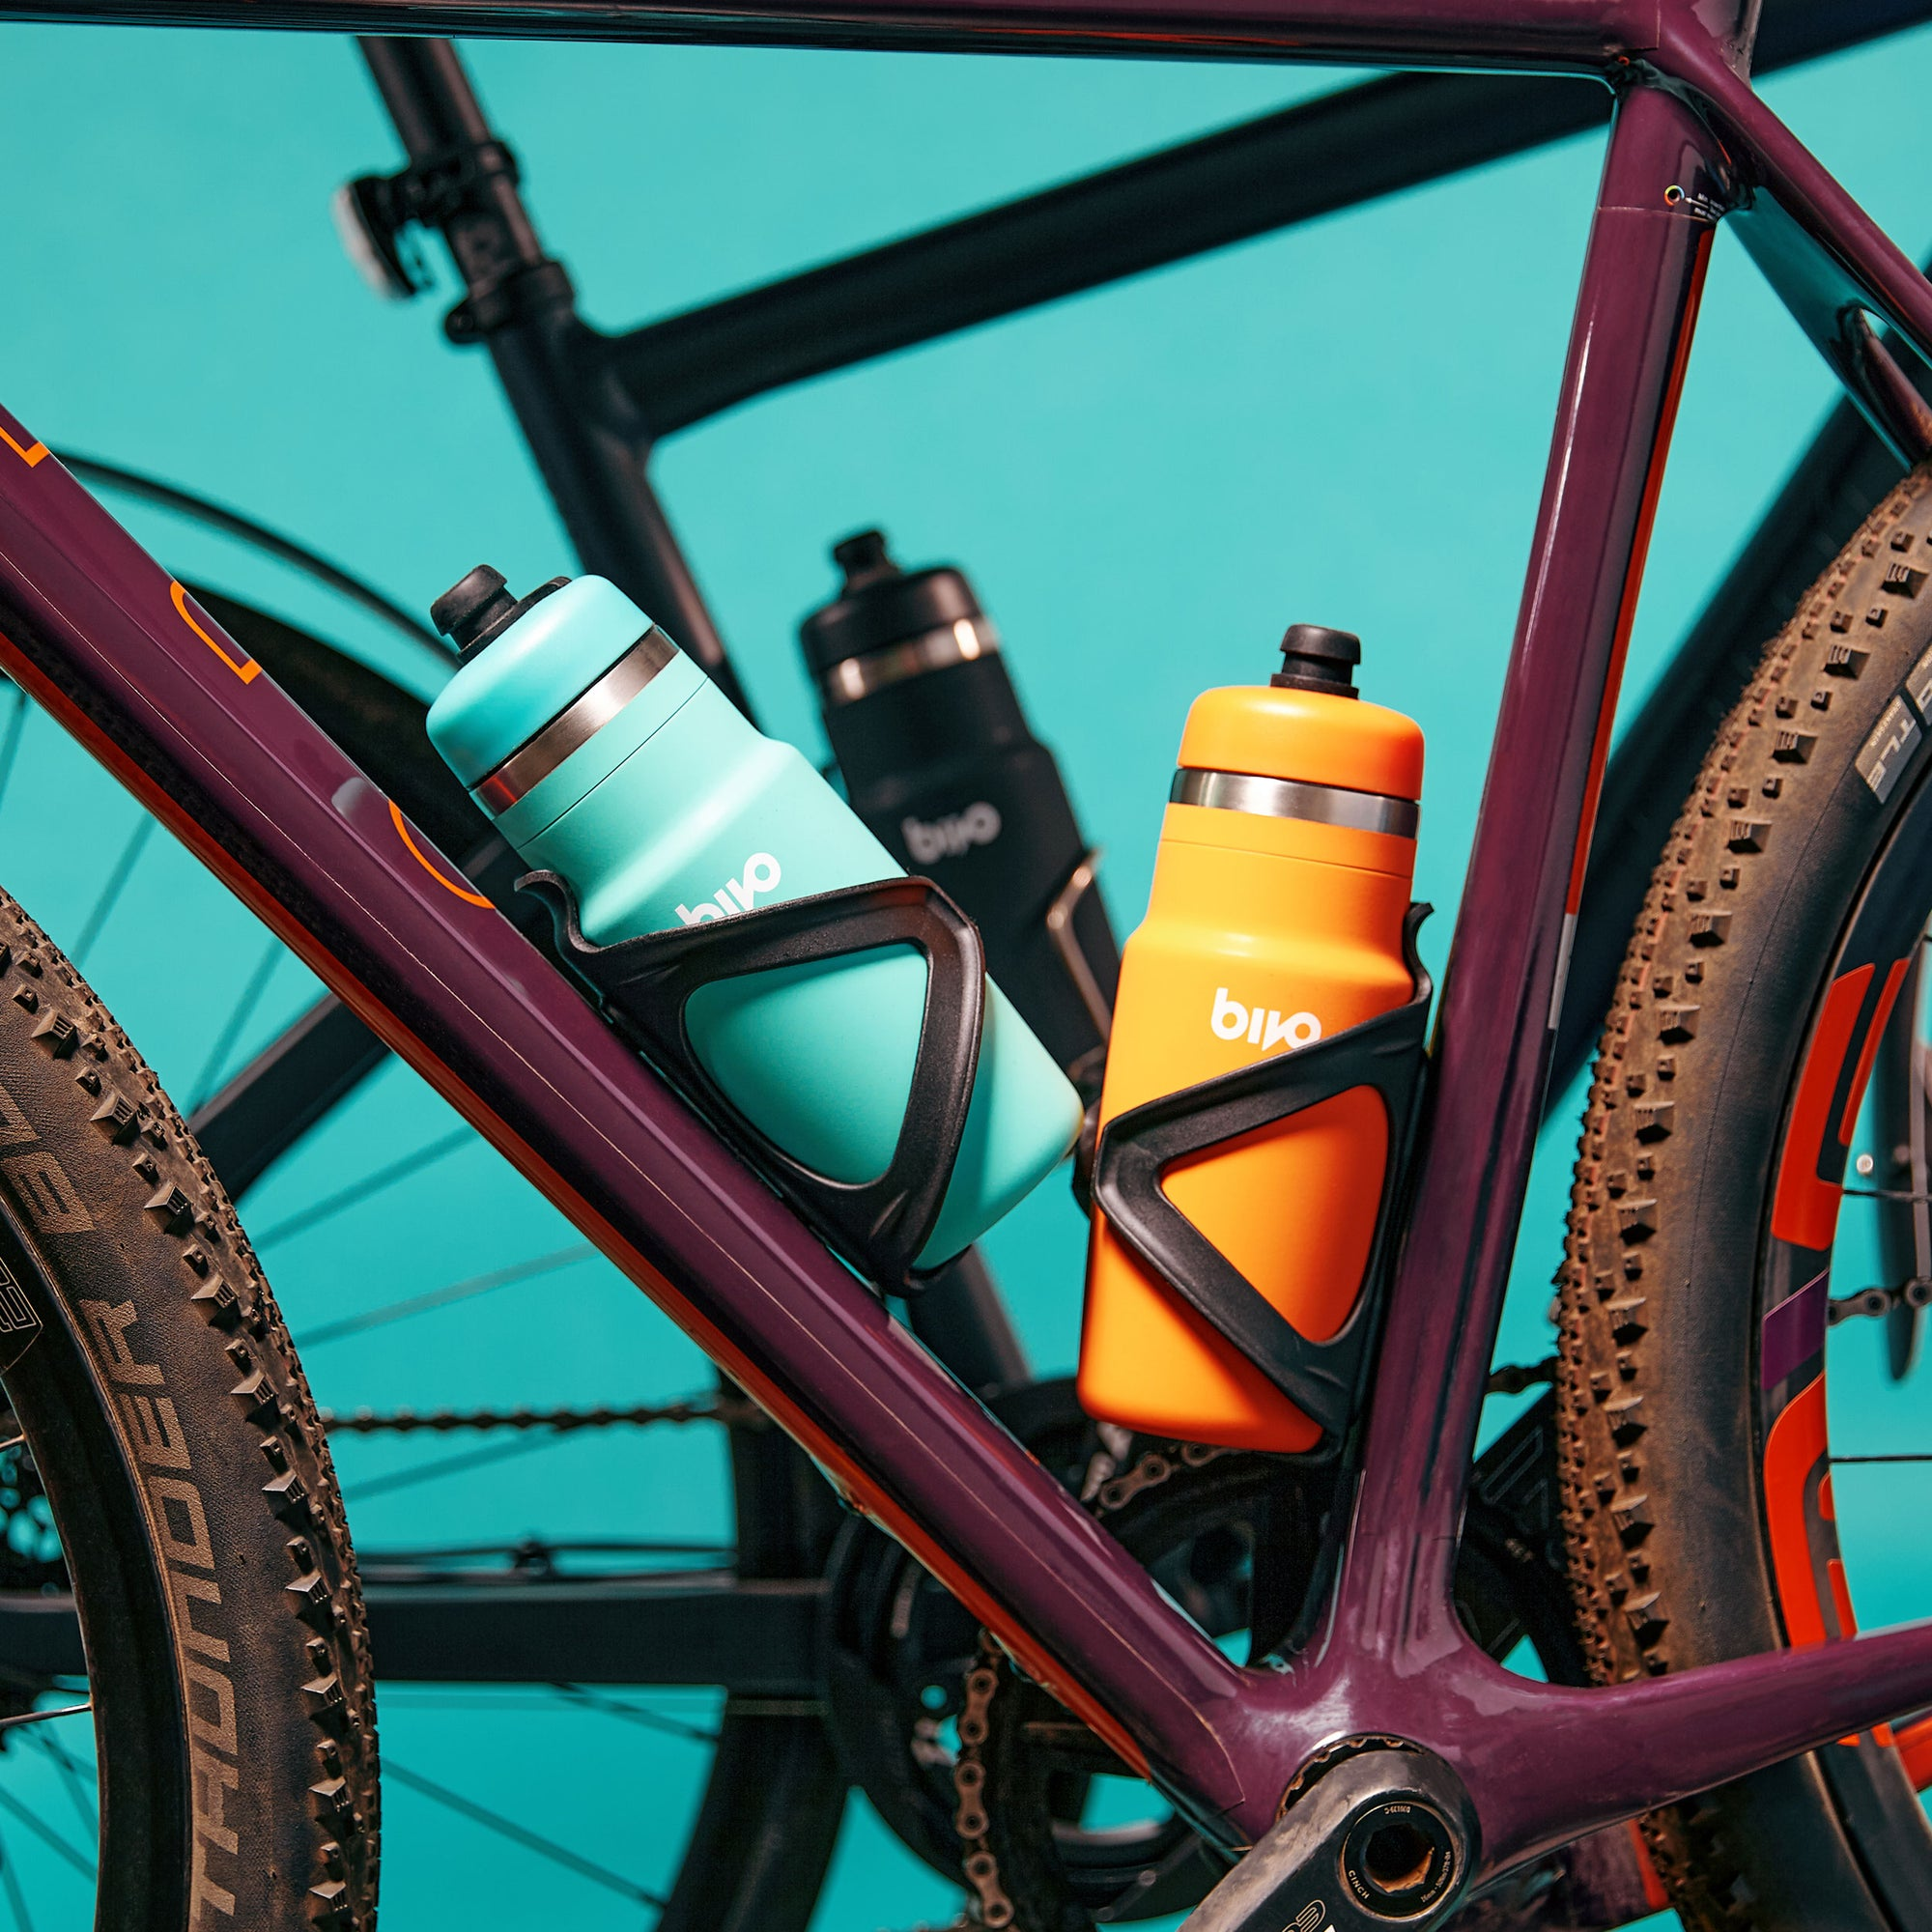 Bivo One stainless steel bike water bottle with a flow-rate fit for cyclists. Built to fit in most universal cages. Clean taste. Built to ride. Dishwasher safe.